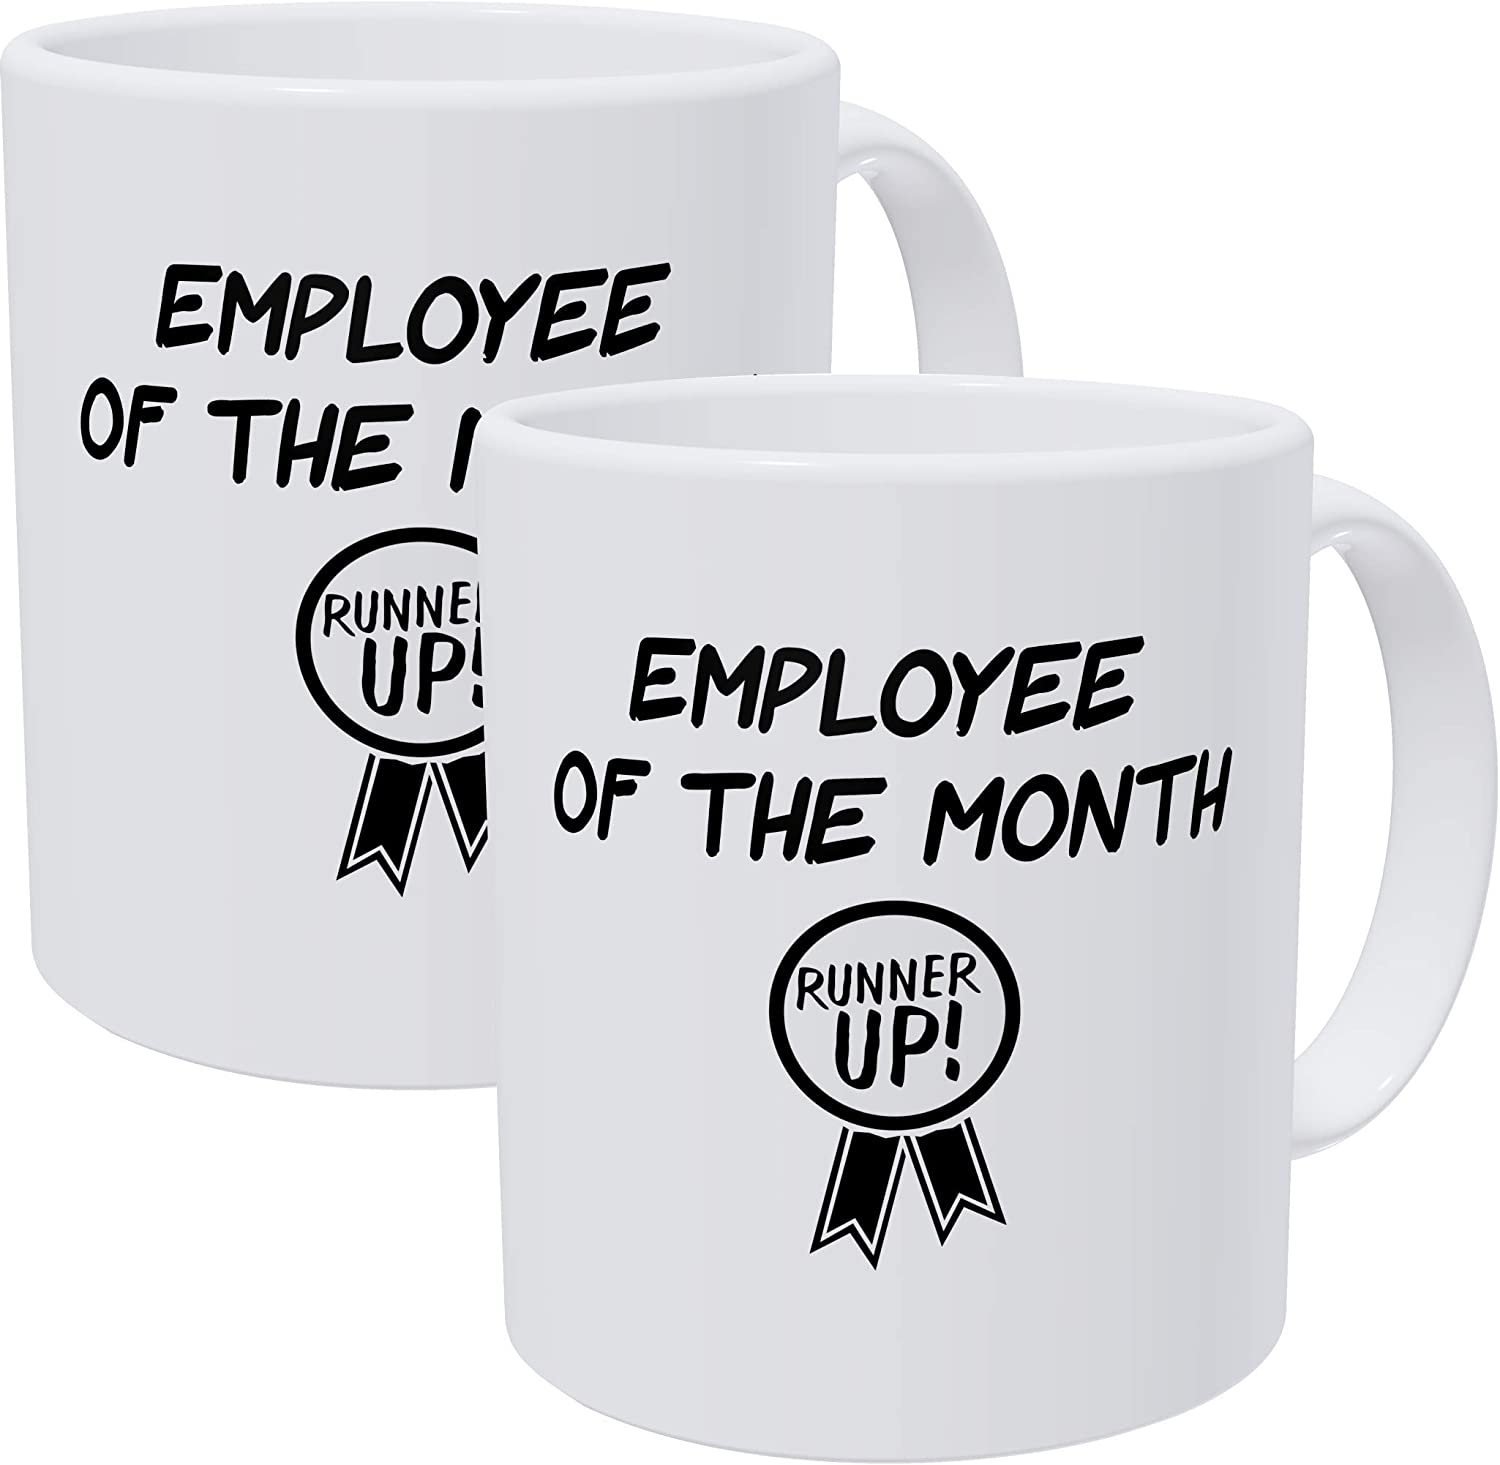 Willcallyou Employee Of The Month with Runner Up Badge Bundle Pack Of 2 Funny Coffee Mugs For Coworkers, 11 Ounces Sarcastic Mug For Office Humor And Coworker, White Elephant Exchange Gifts at Work